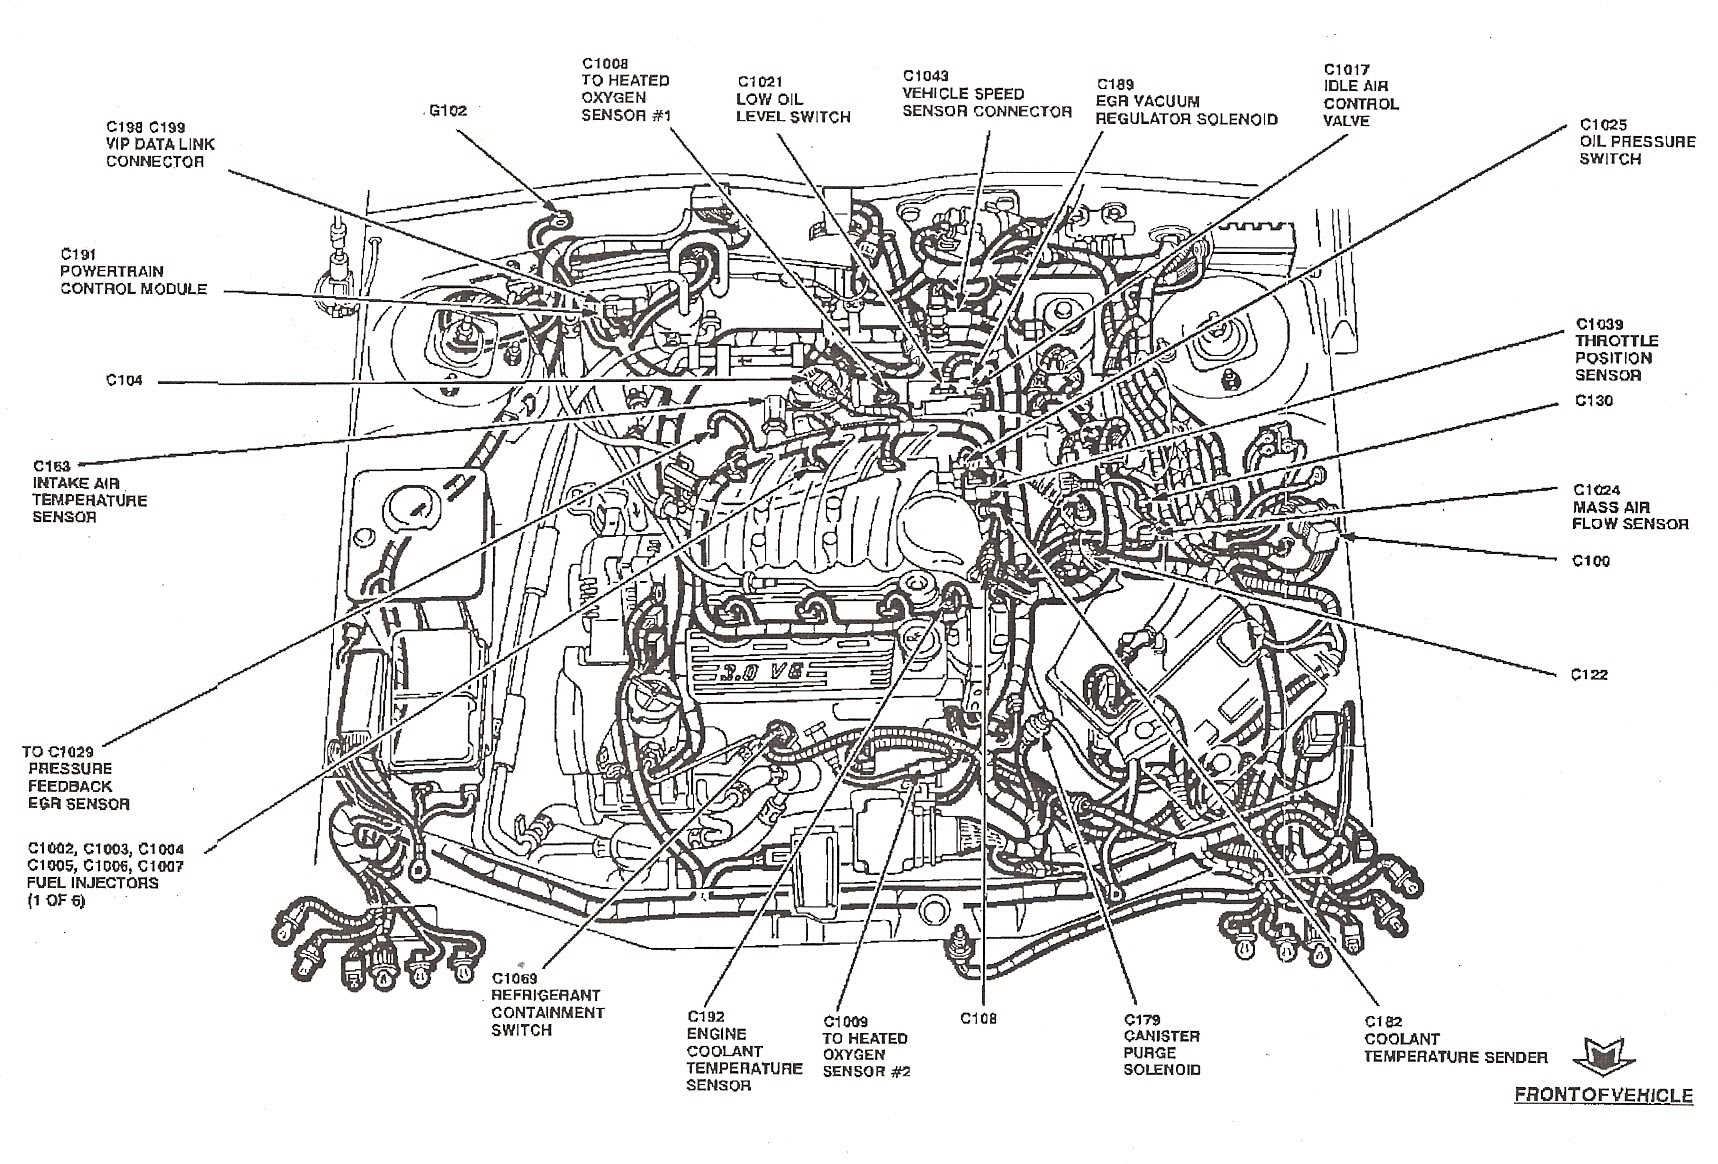 2002 Ford Focus Engine Wiring Diagram Wiring Diagram Series A Series A Pasticceriagele It